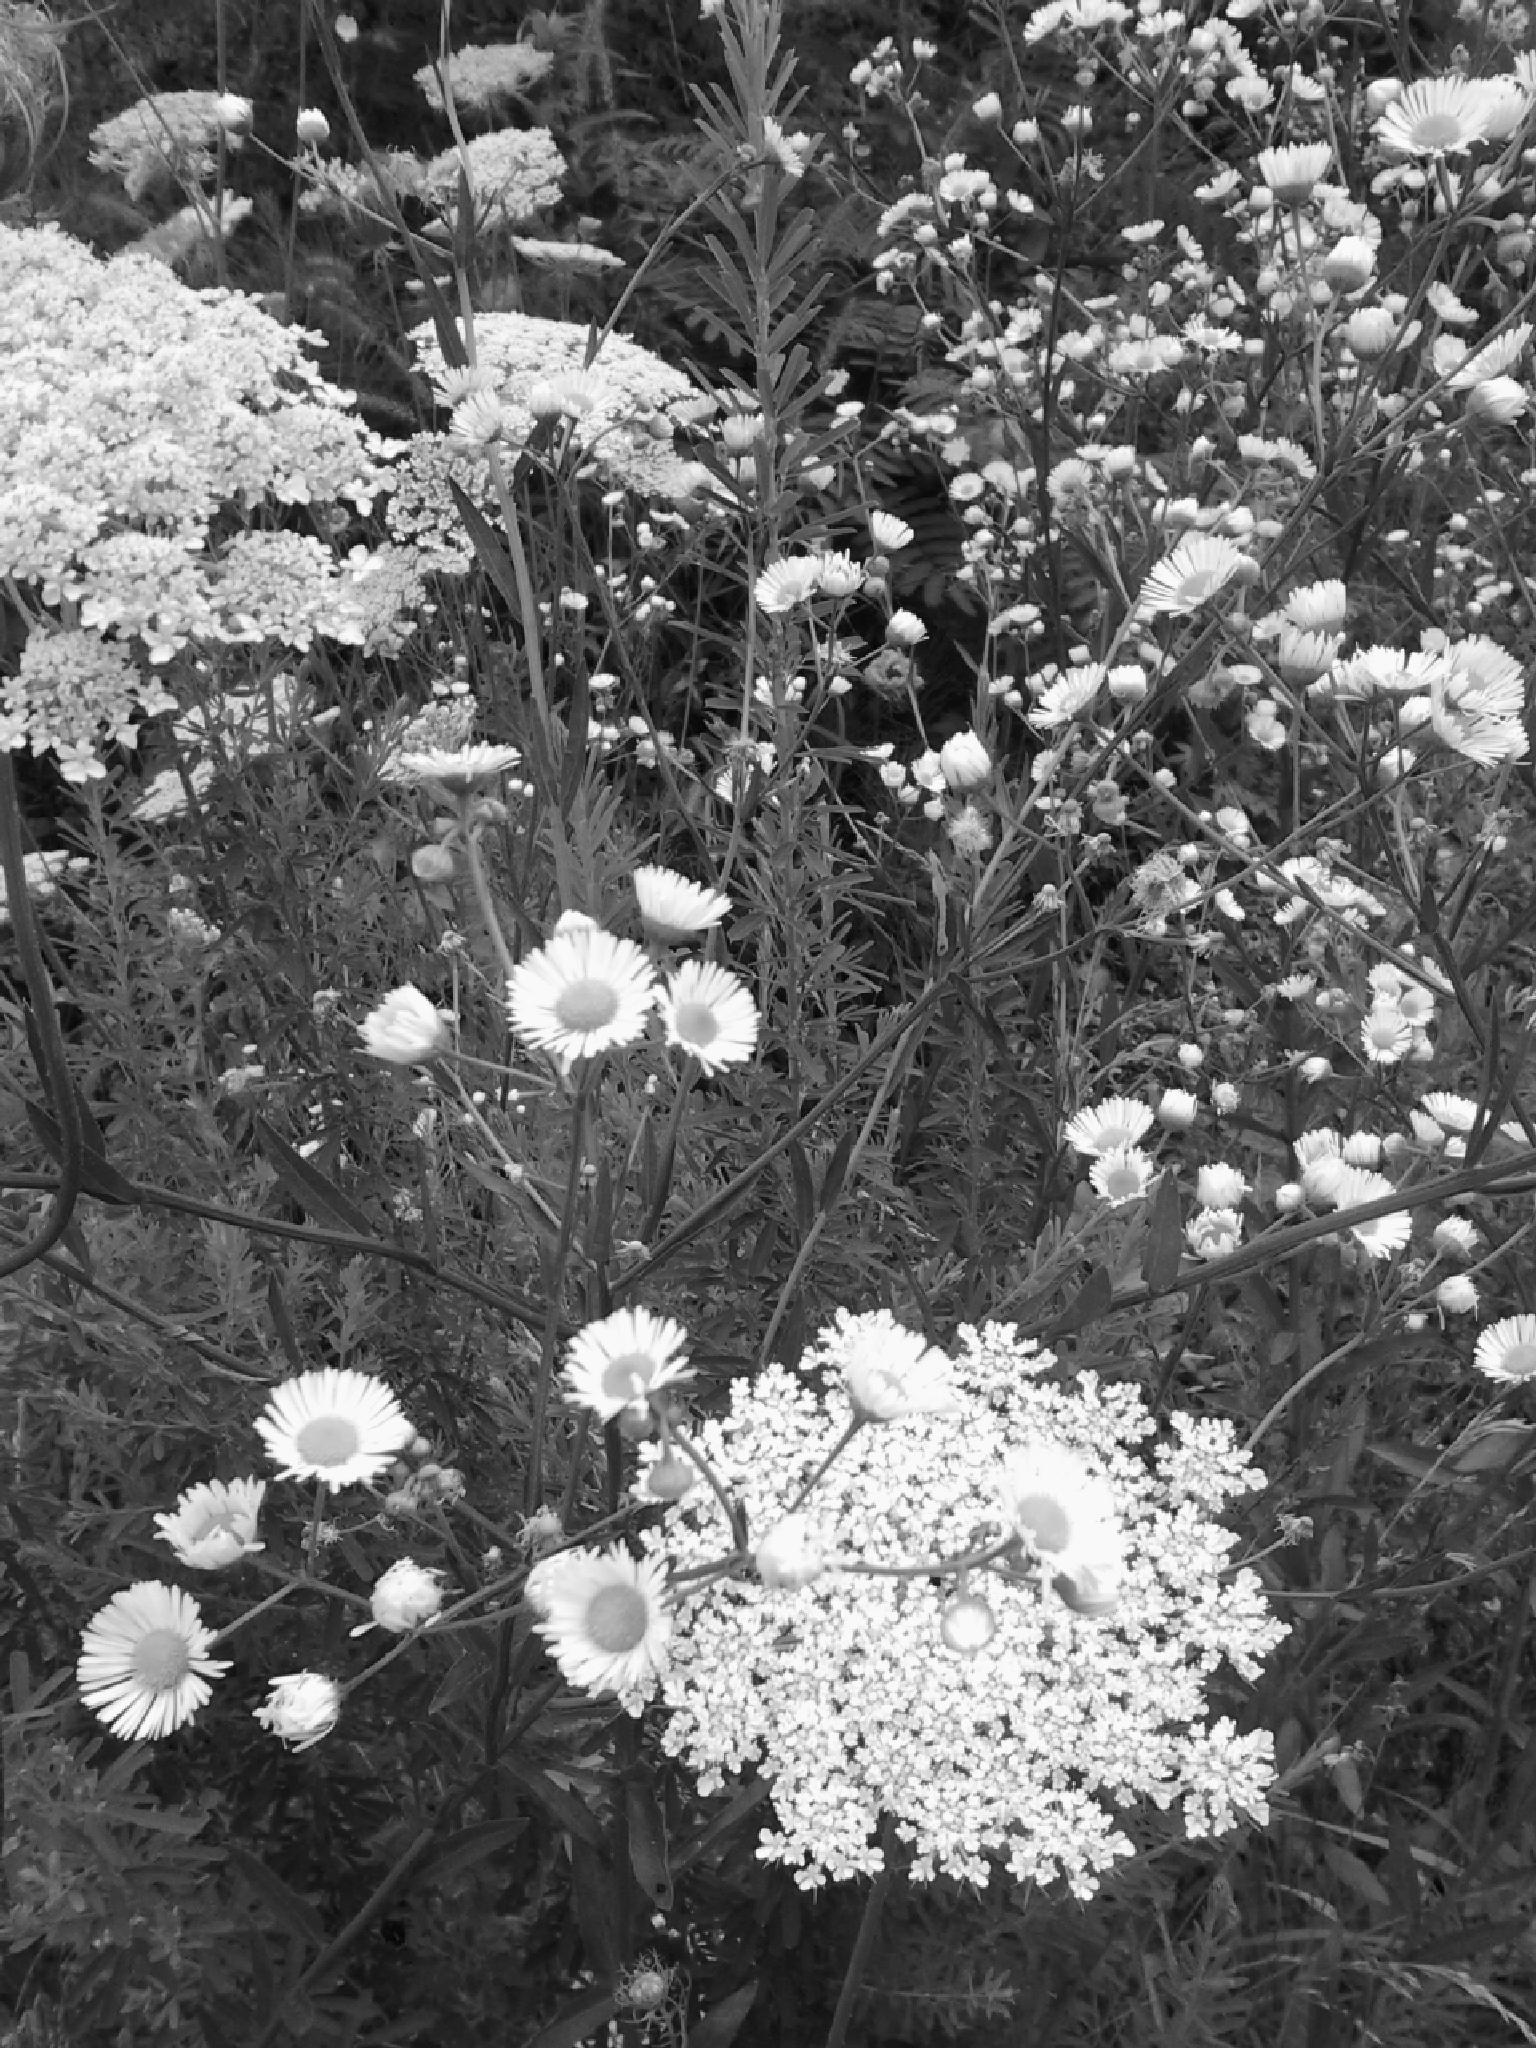 Roadside Weeds #2 by Lucy Jones Photography